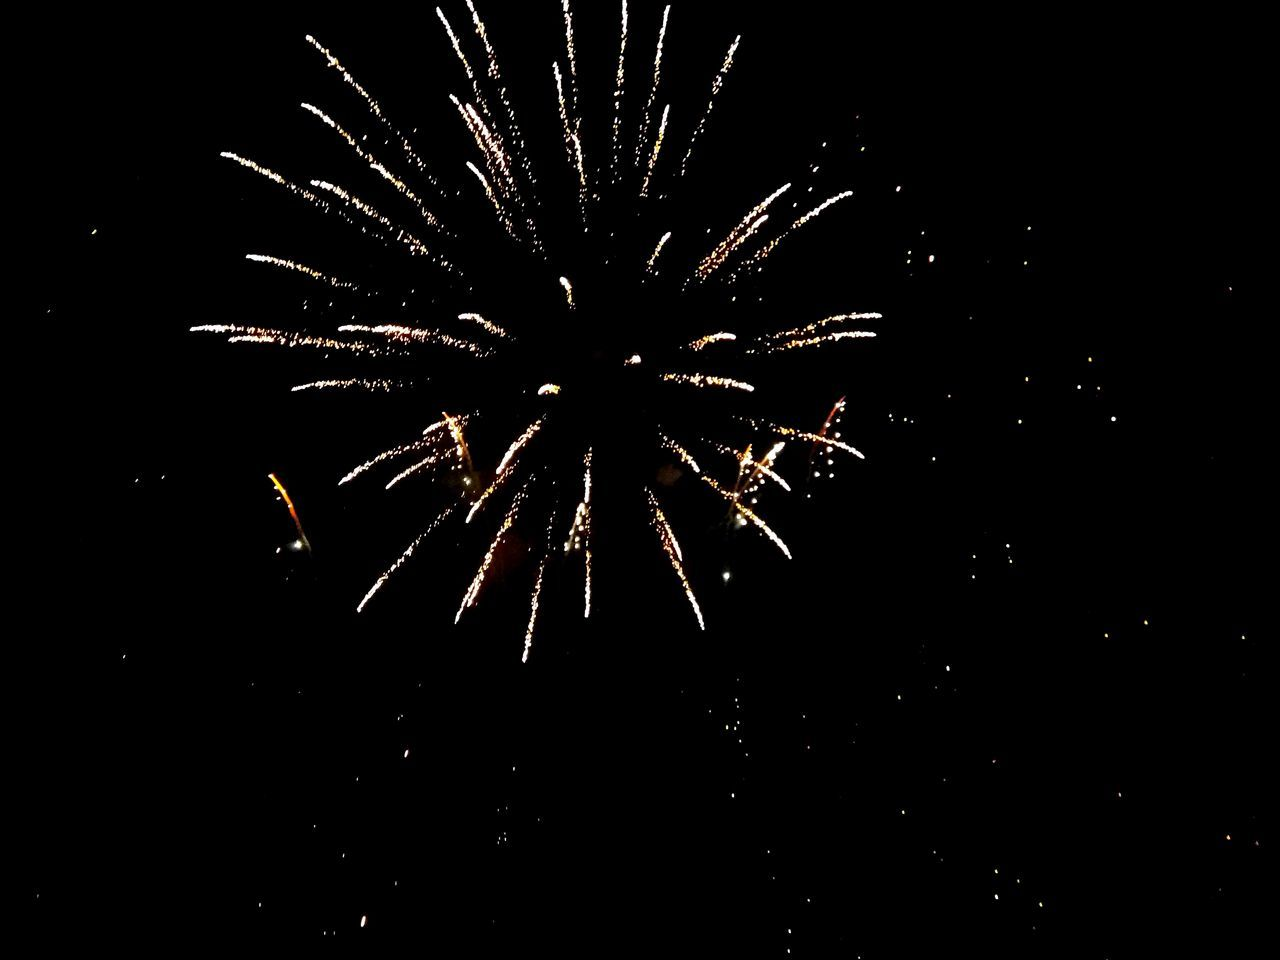 Celebration Firework Display Exploding Night Motion Sky Firework - Man Made Object Event Low Angle View No People Long Exposure Outdoors Sparks Illuminated